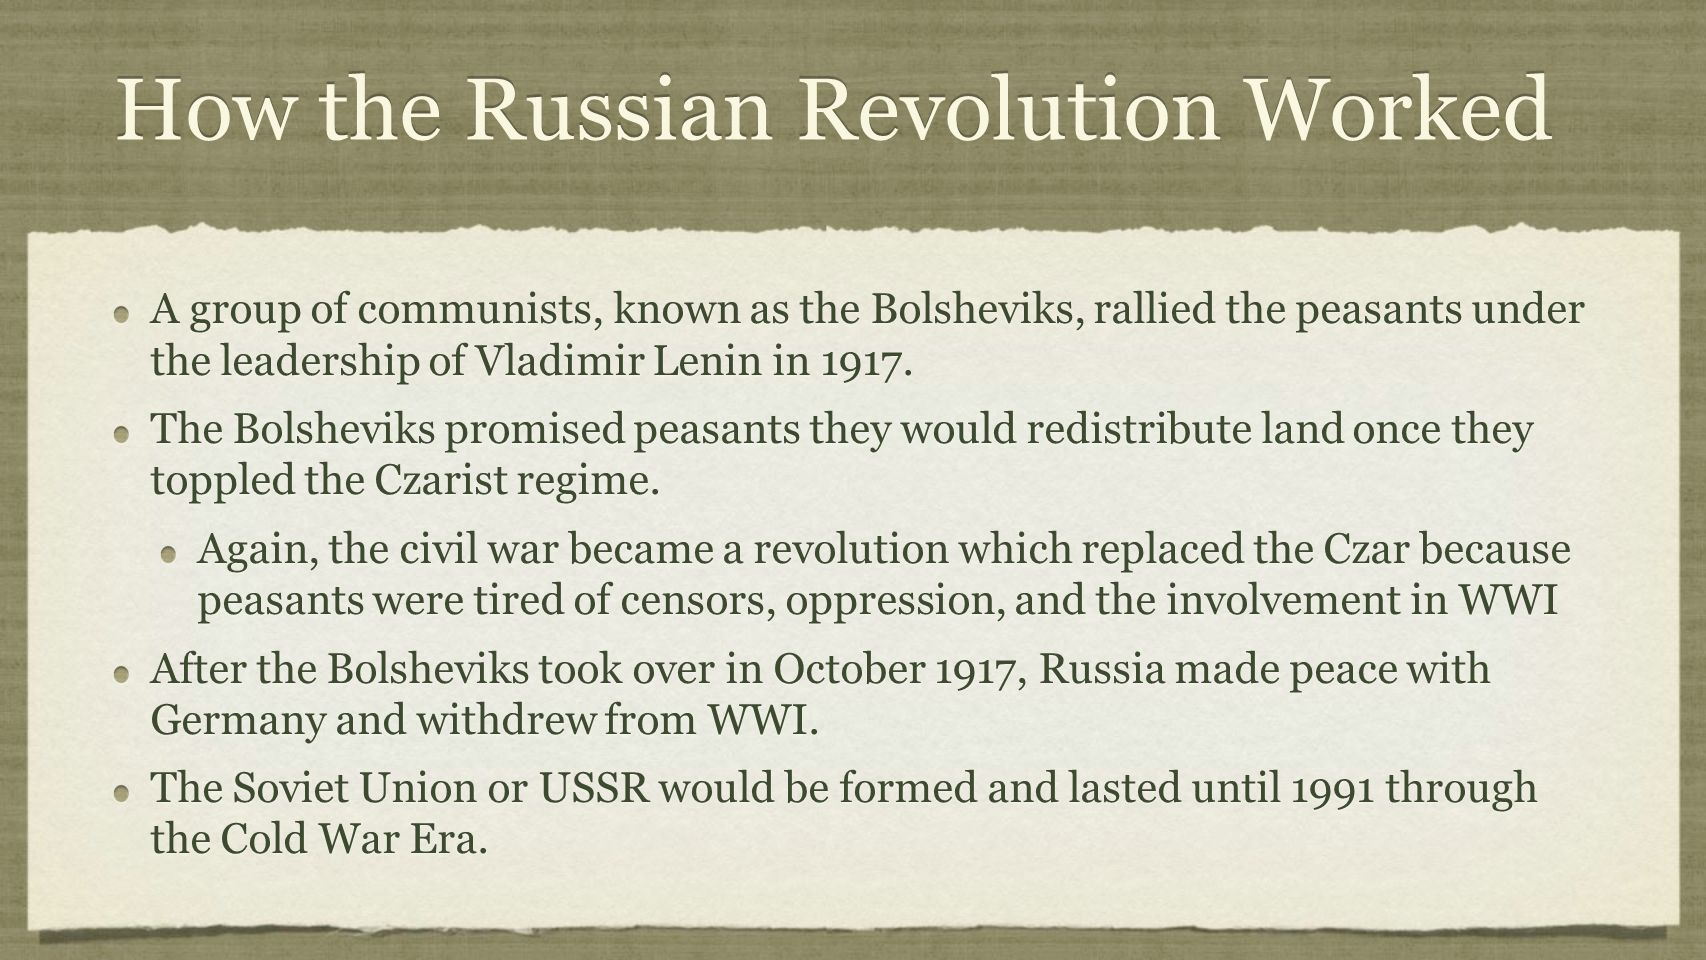 How the Russian Revolution Worked